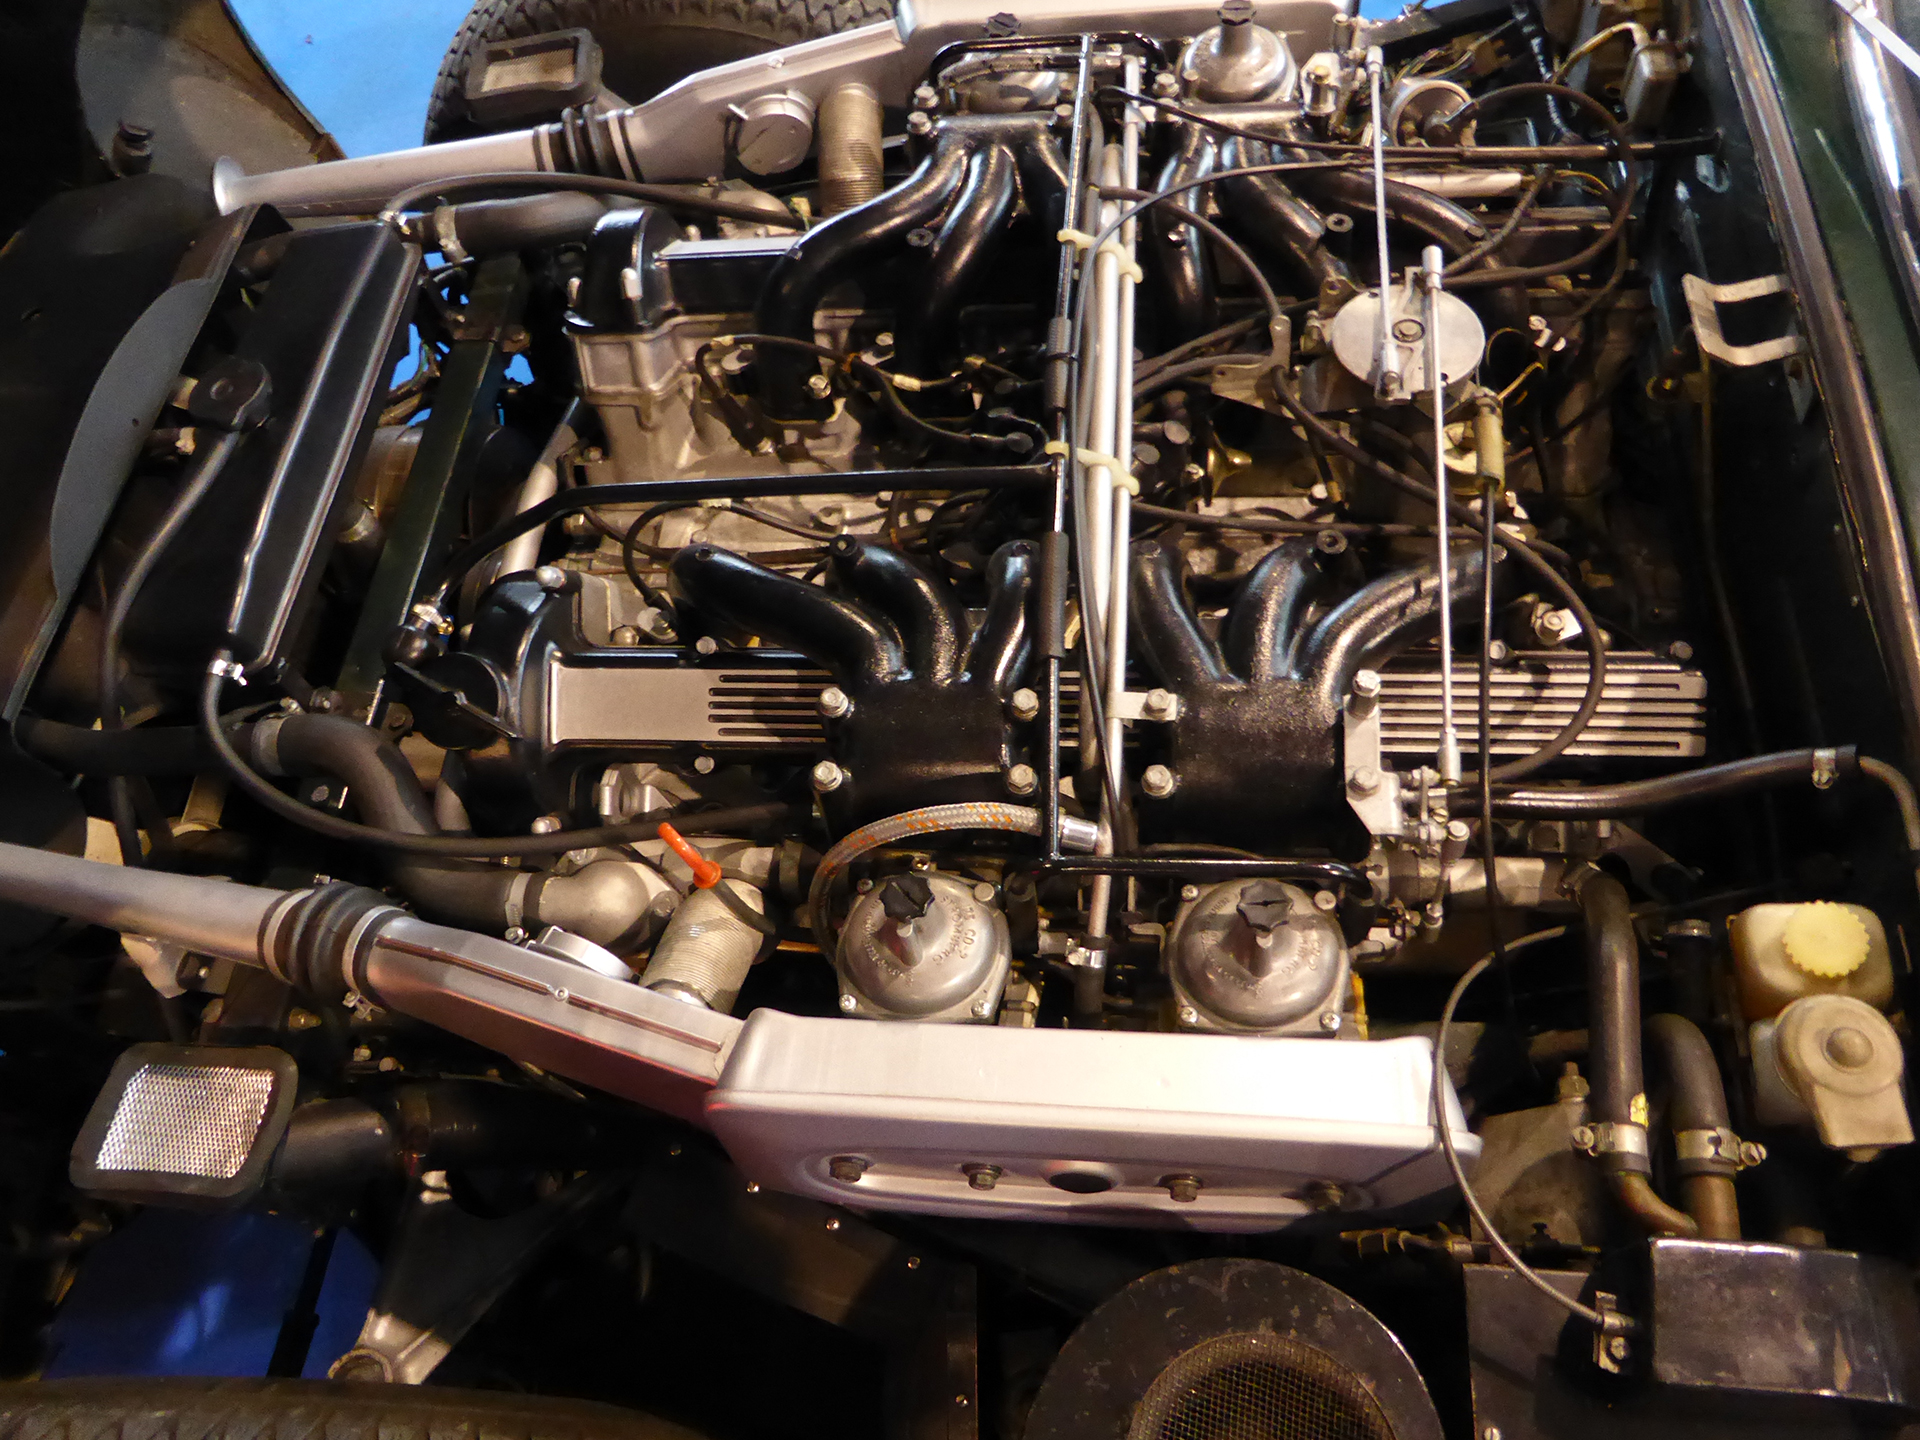 DM - photo - Jaguar E Type - engine / moteur - Ouest Motors Festival 2015